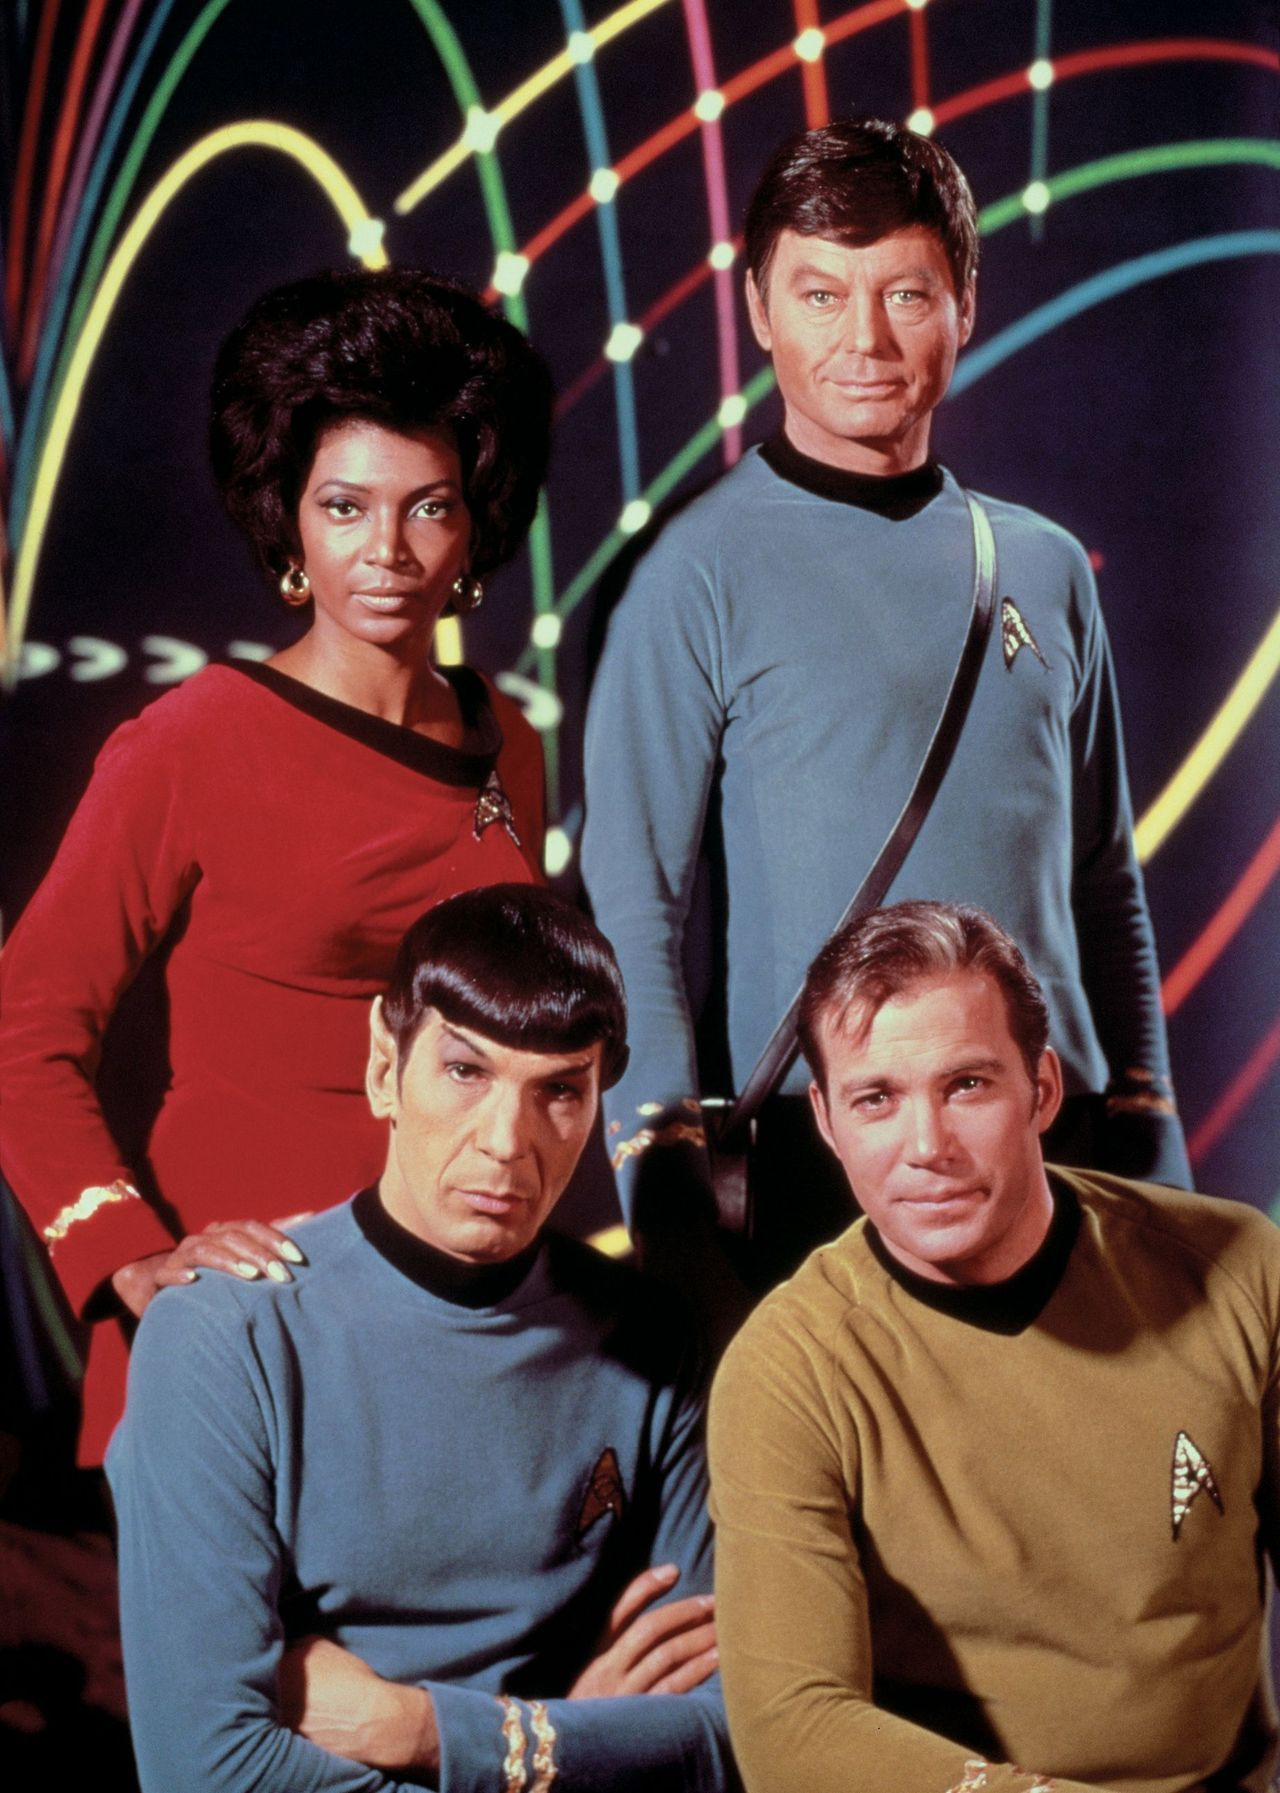 William Shatner wants Star Trek TV return #startv